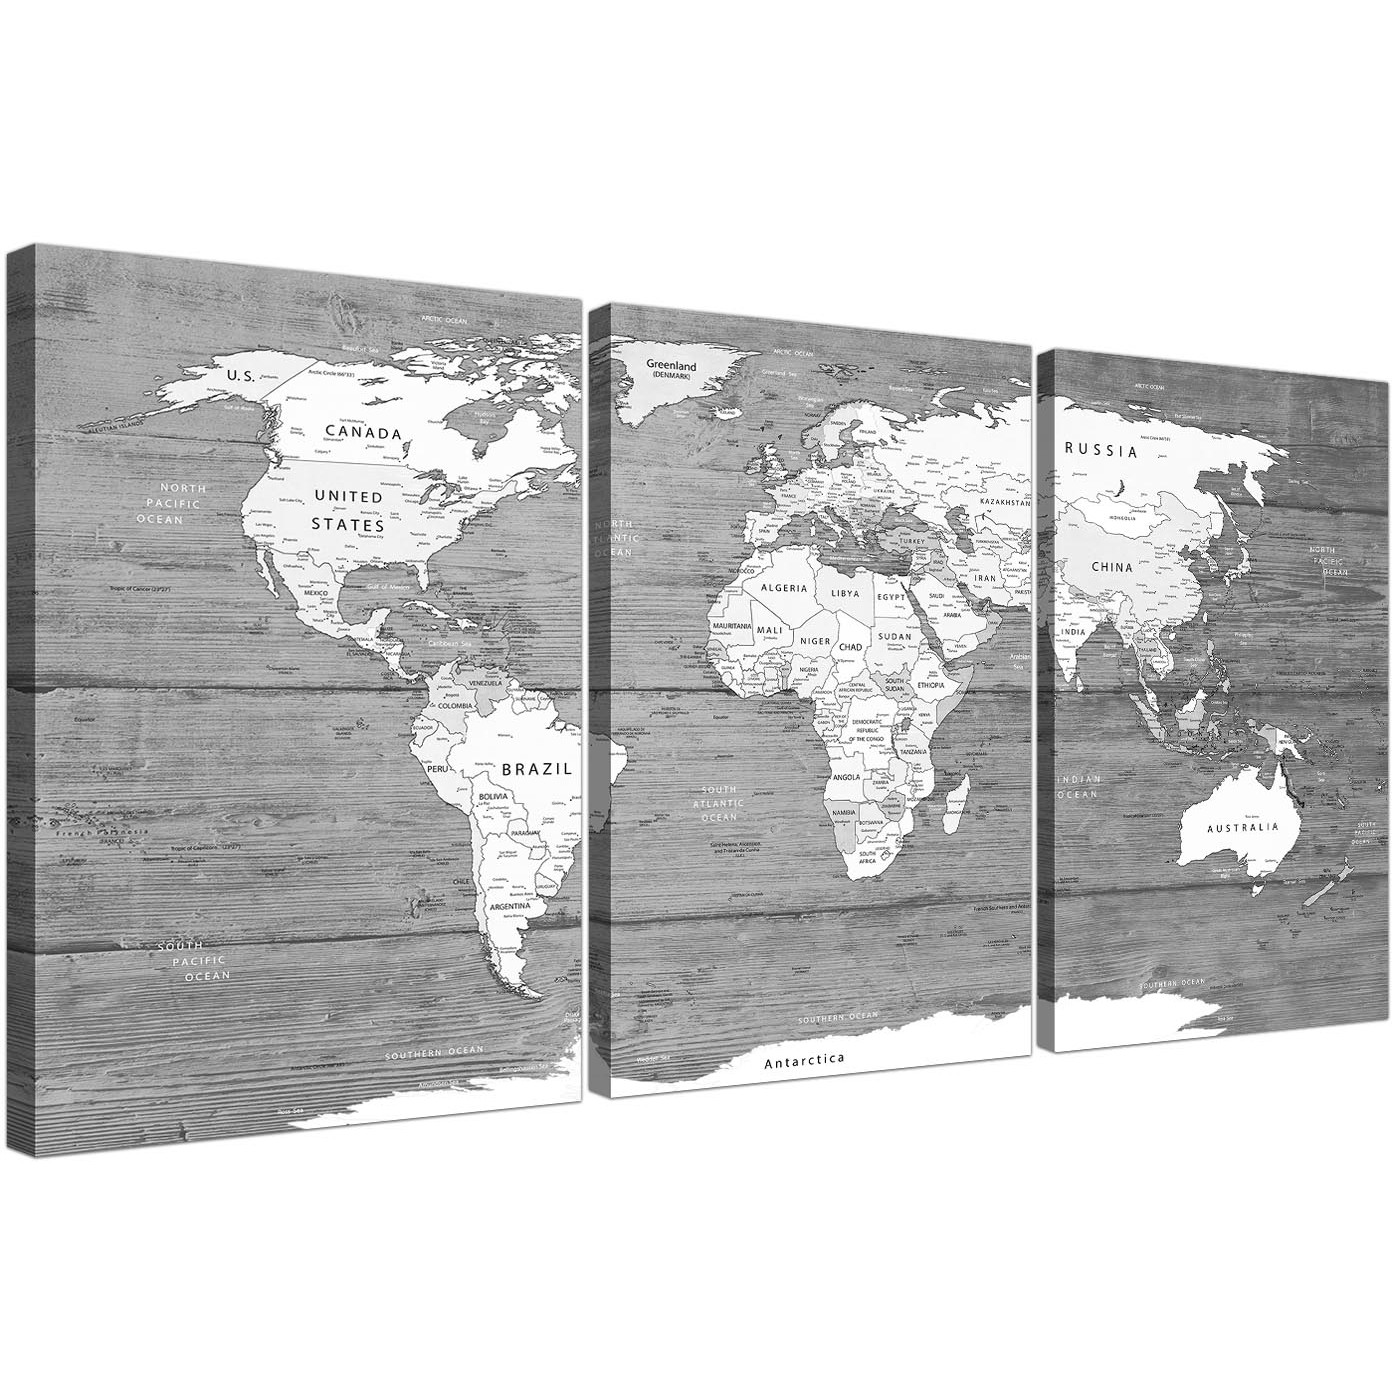 Beau Oversized Large Black White Map Of World Atlas Canvas Wall Art Print Multi  3 Panel 3315 Display Gallery Item 1 ...